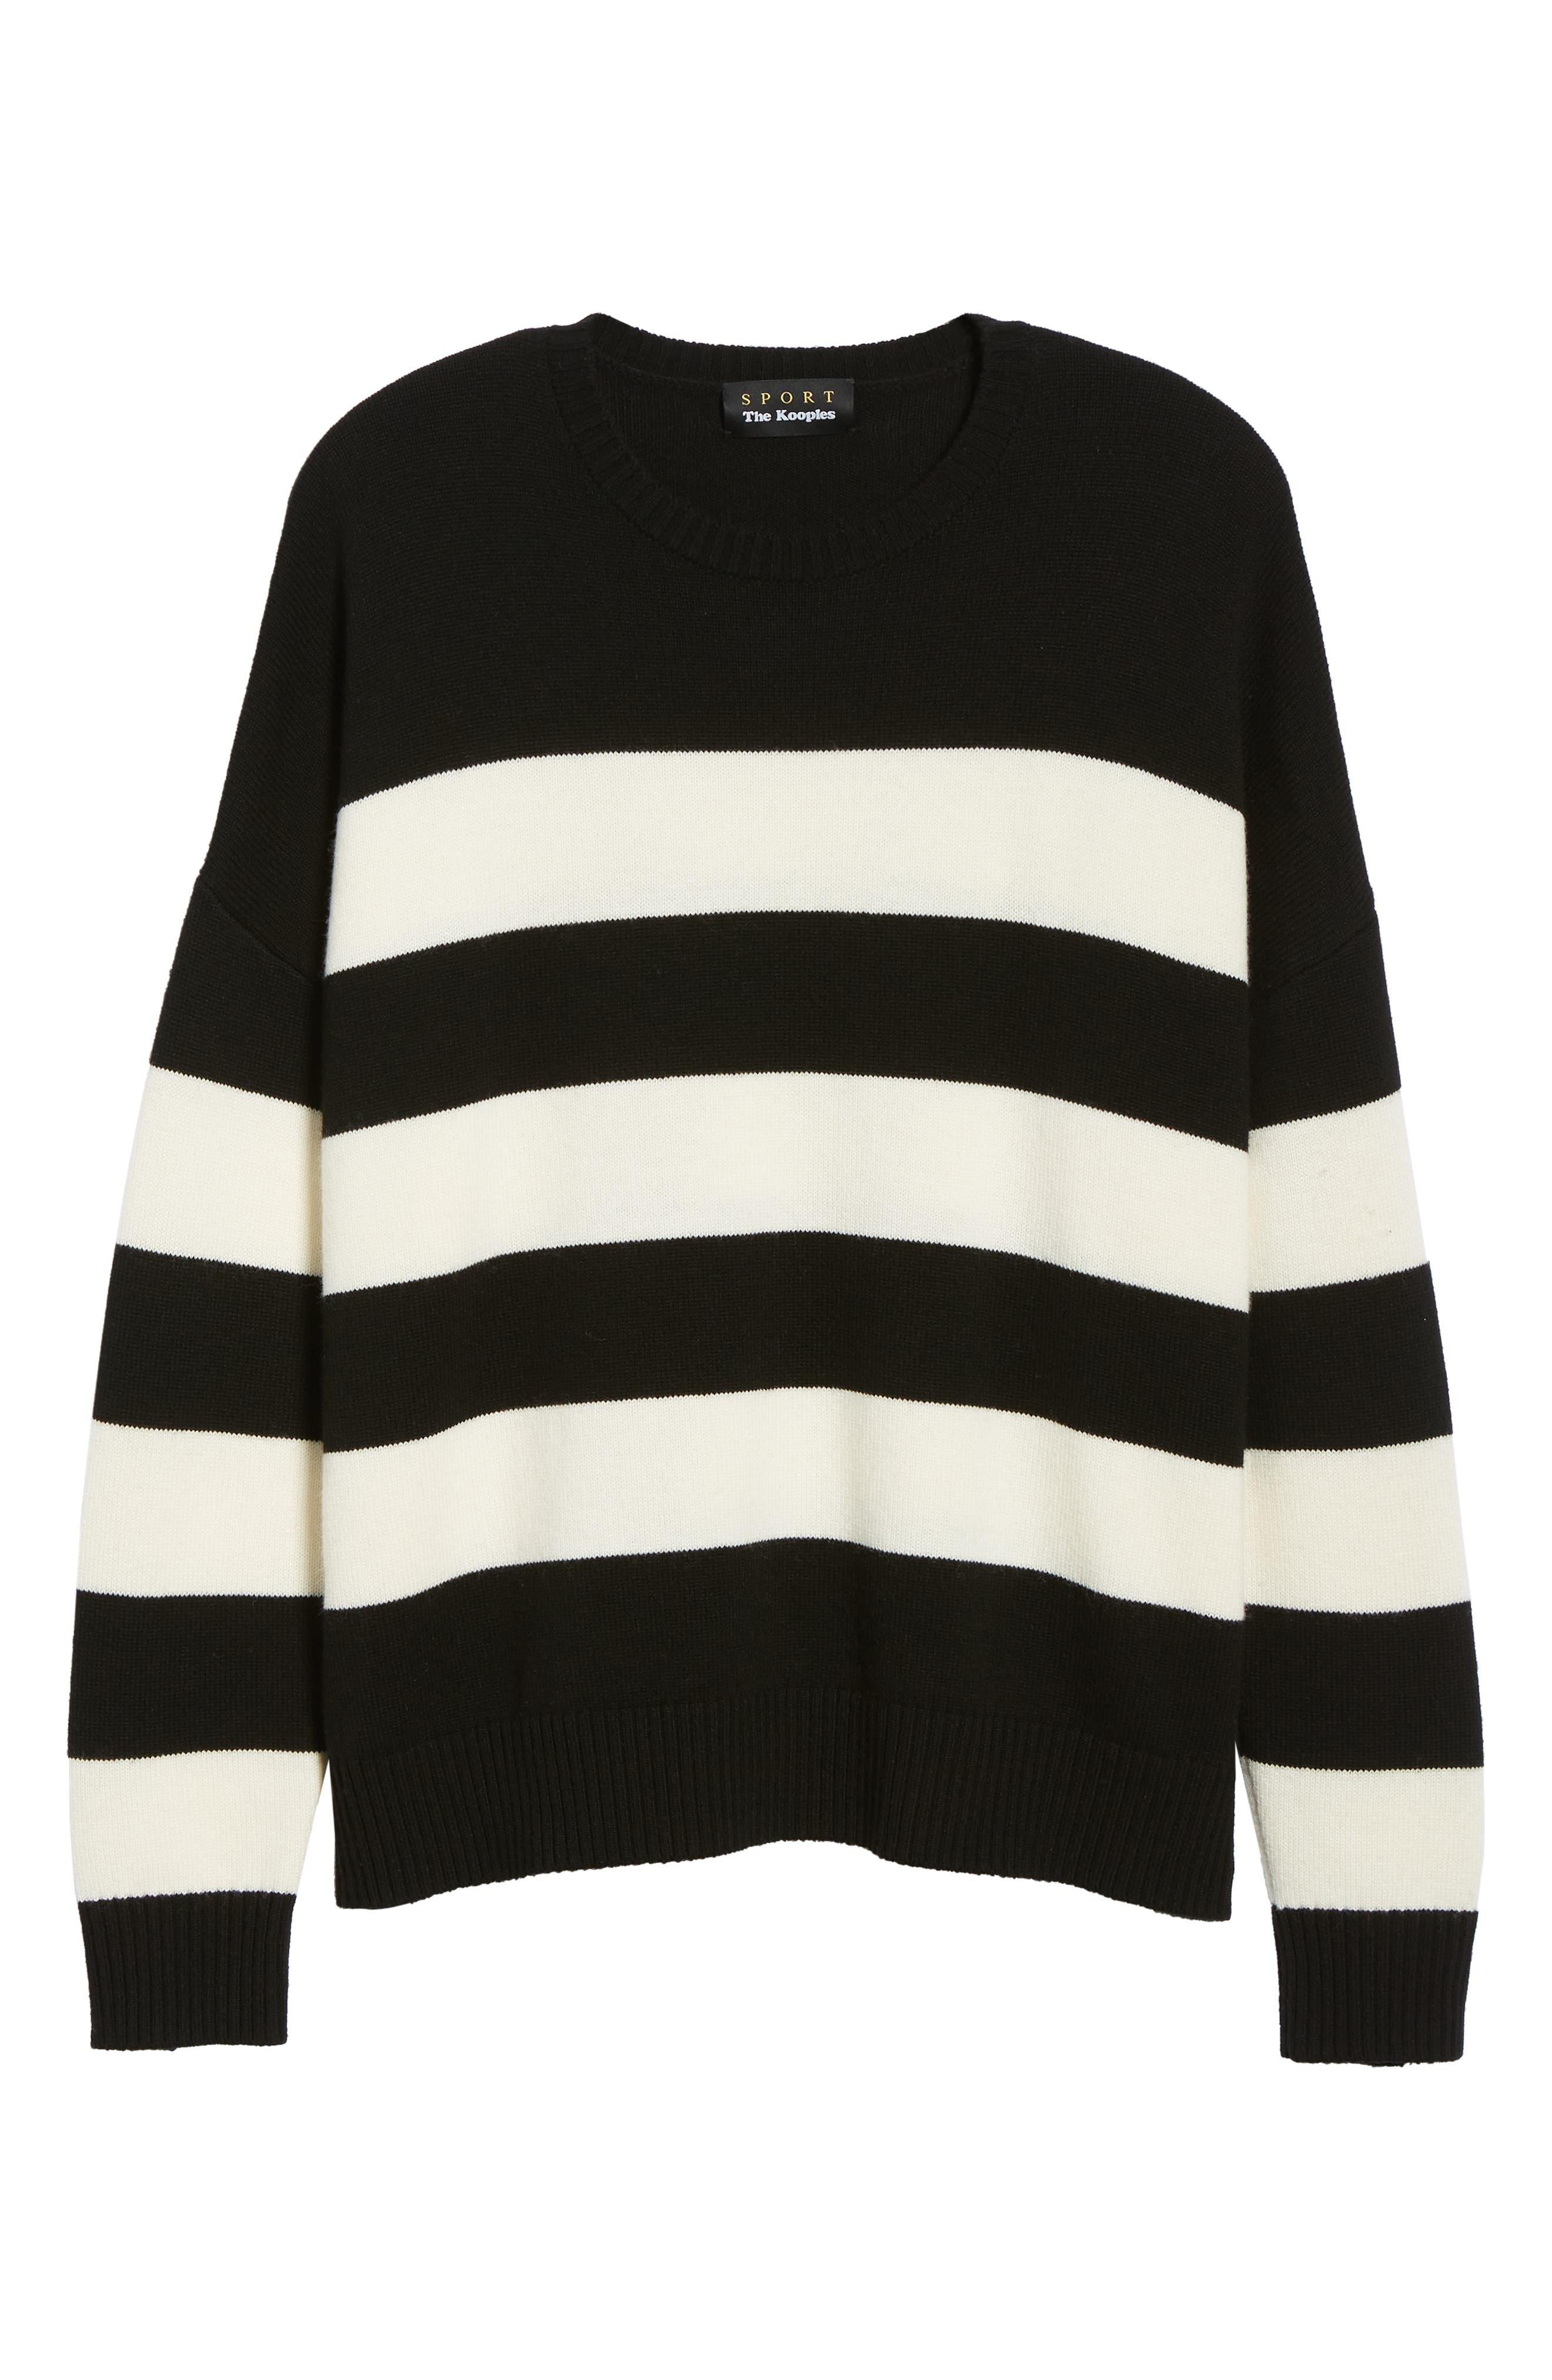 THE KOOPLES,                             Classic Fit Striped Sweater,                             Alternate thumbnail 6, color,                             001